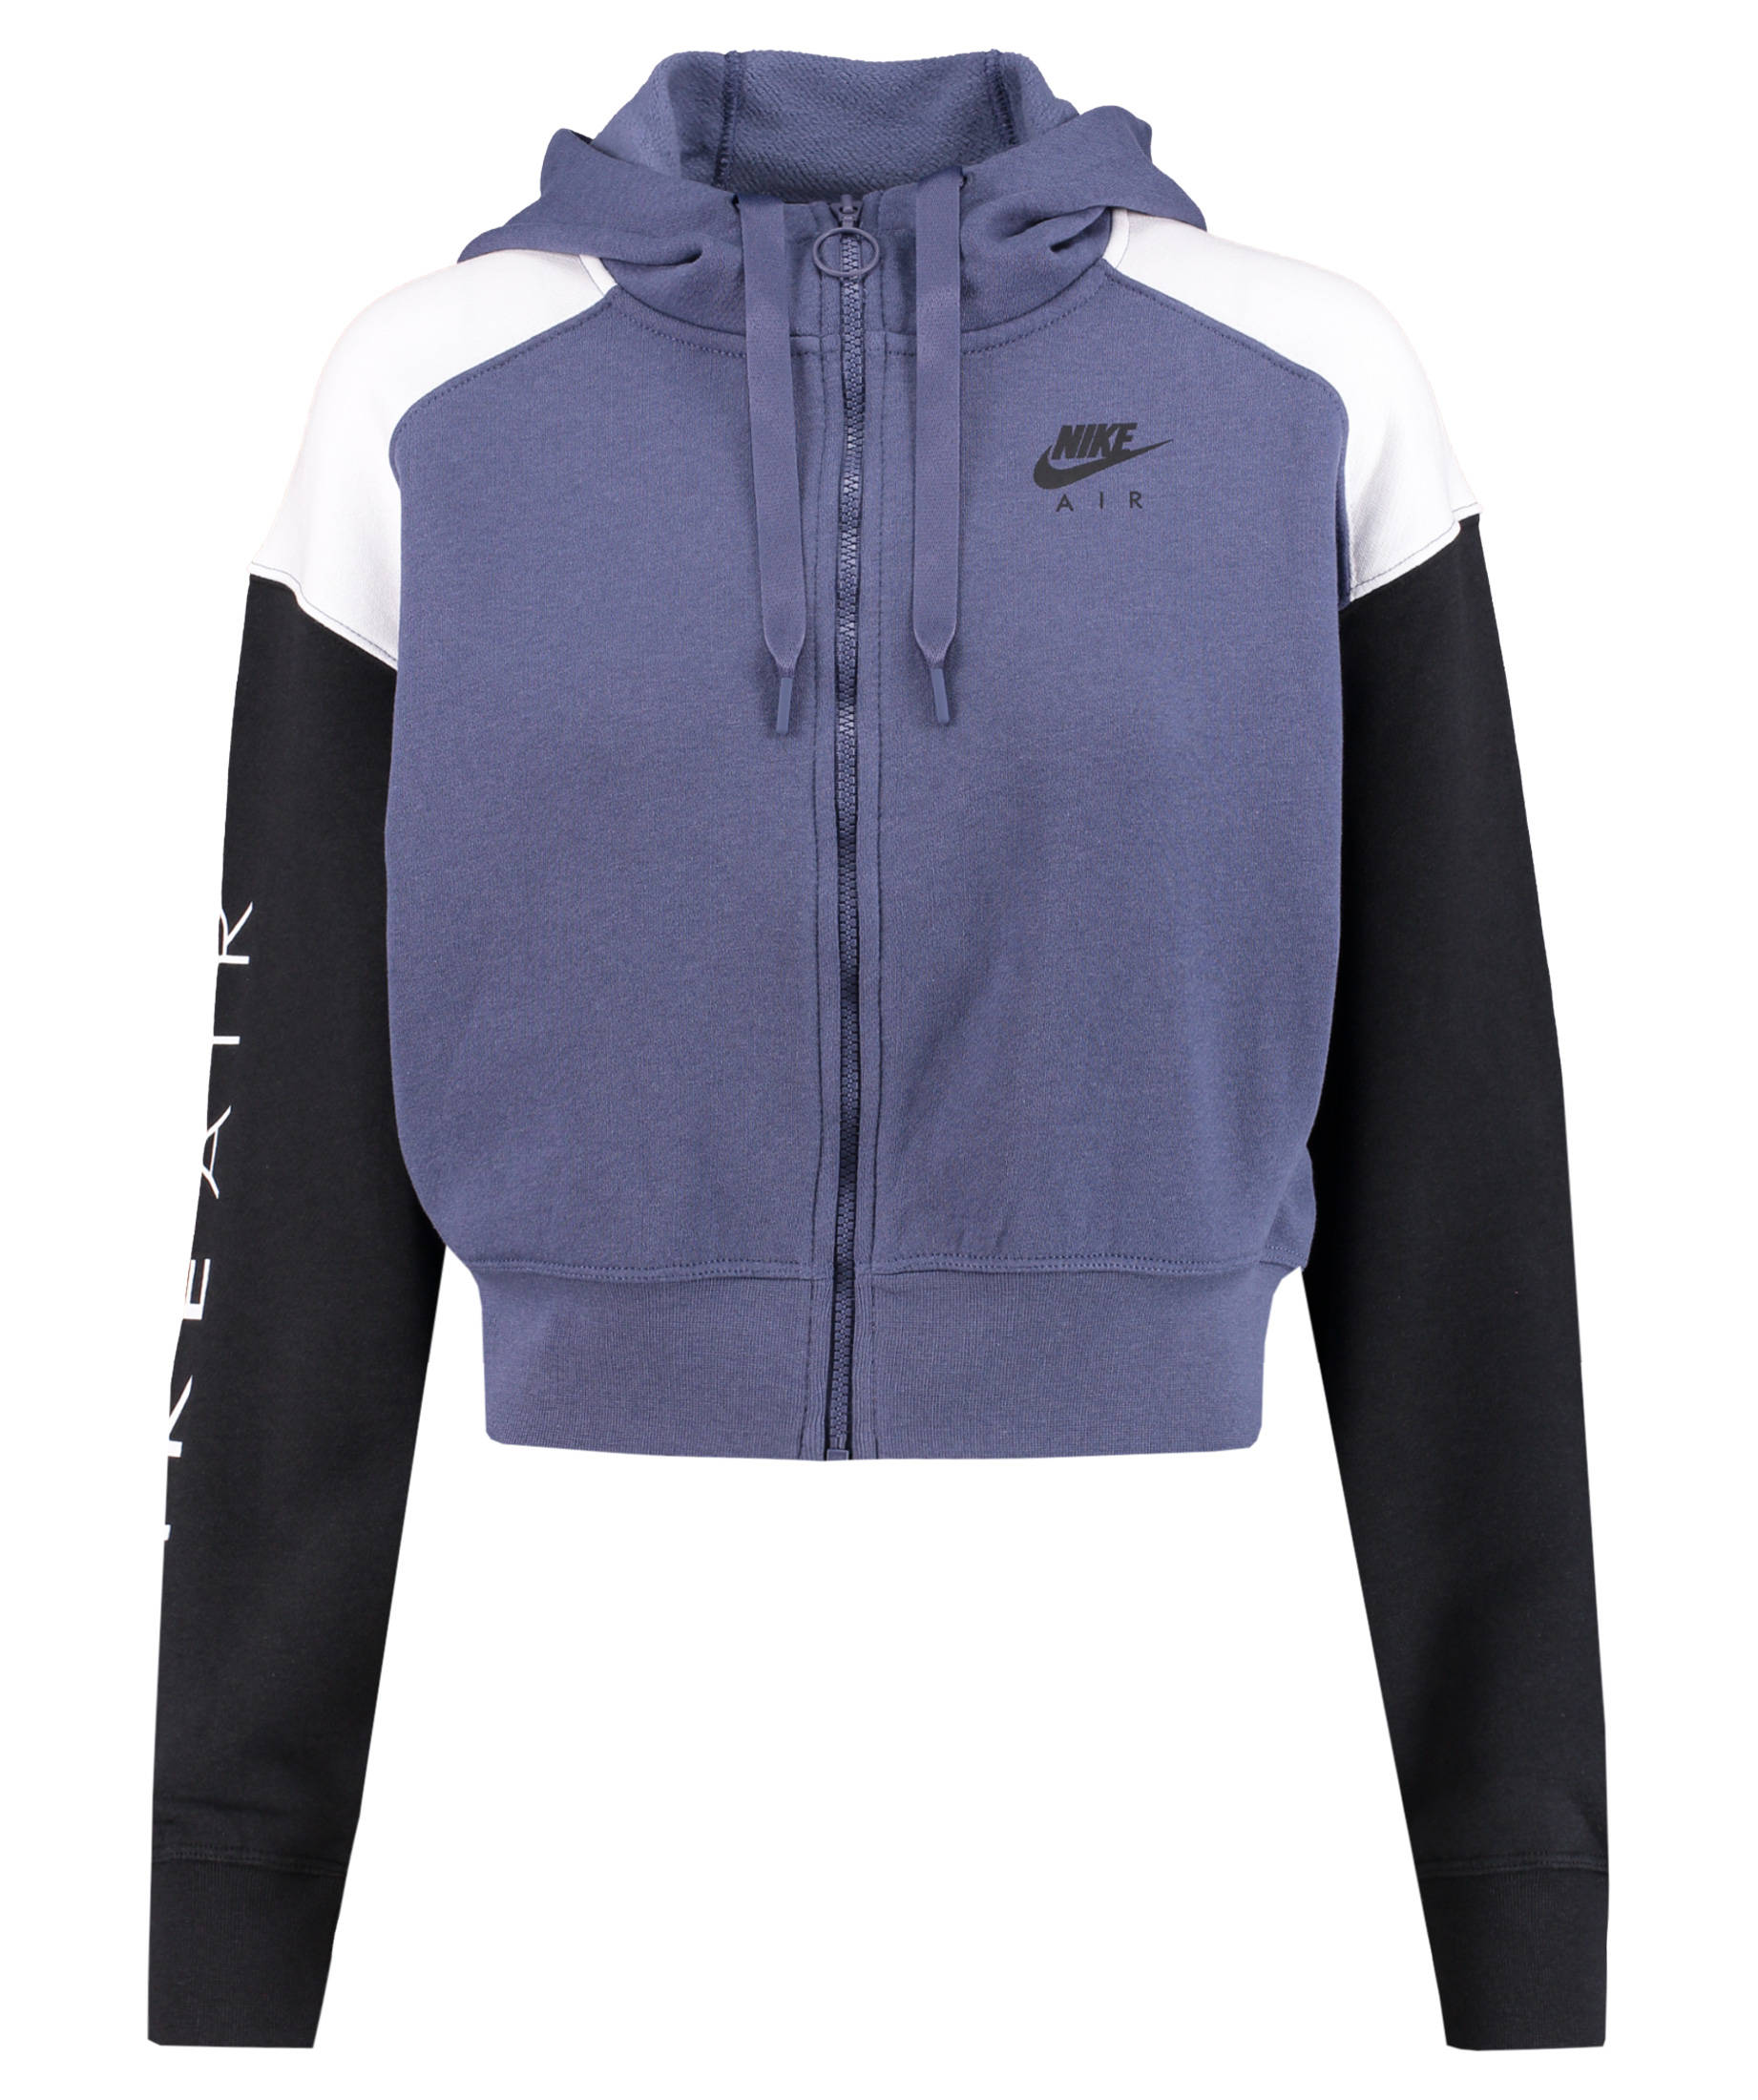 sports shoes 9c148 b5b7b Nike Damen Air Zip Hoodie lila-schwarz-weiß